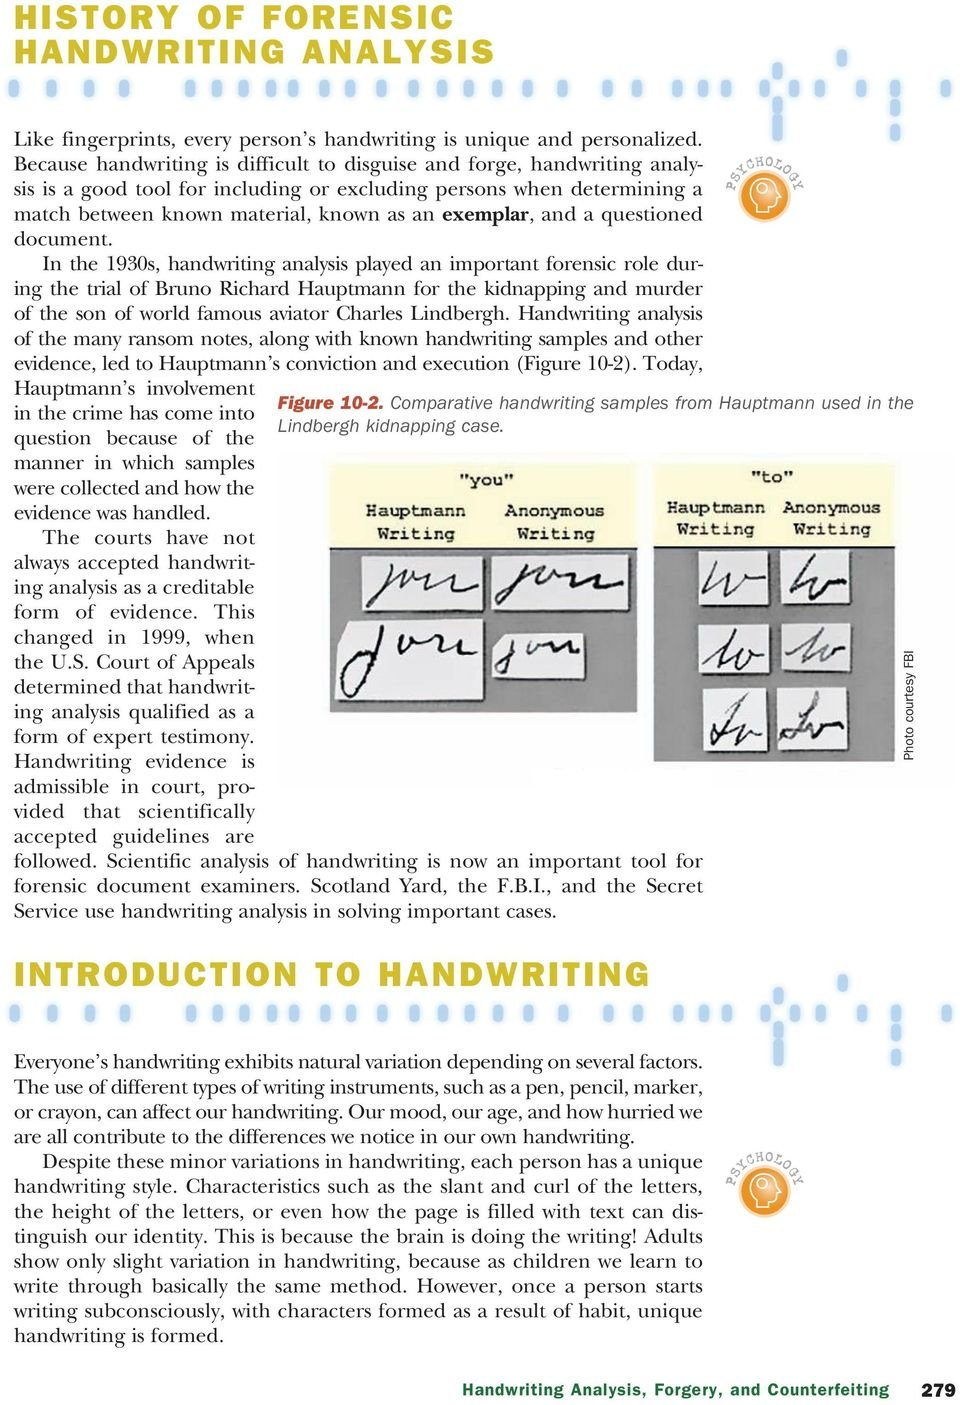 Handwriting Analysis Forgery And Counterfeiting  Pdf Regarding Handwriting Analysis Forgery And Counterfeiting Worksheet